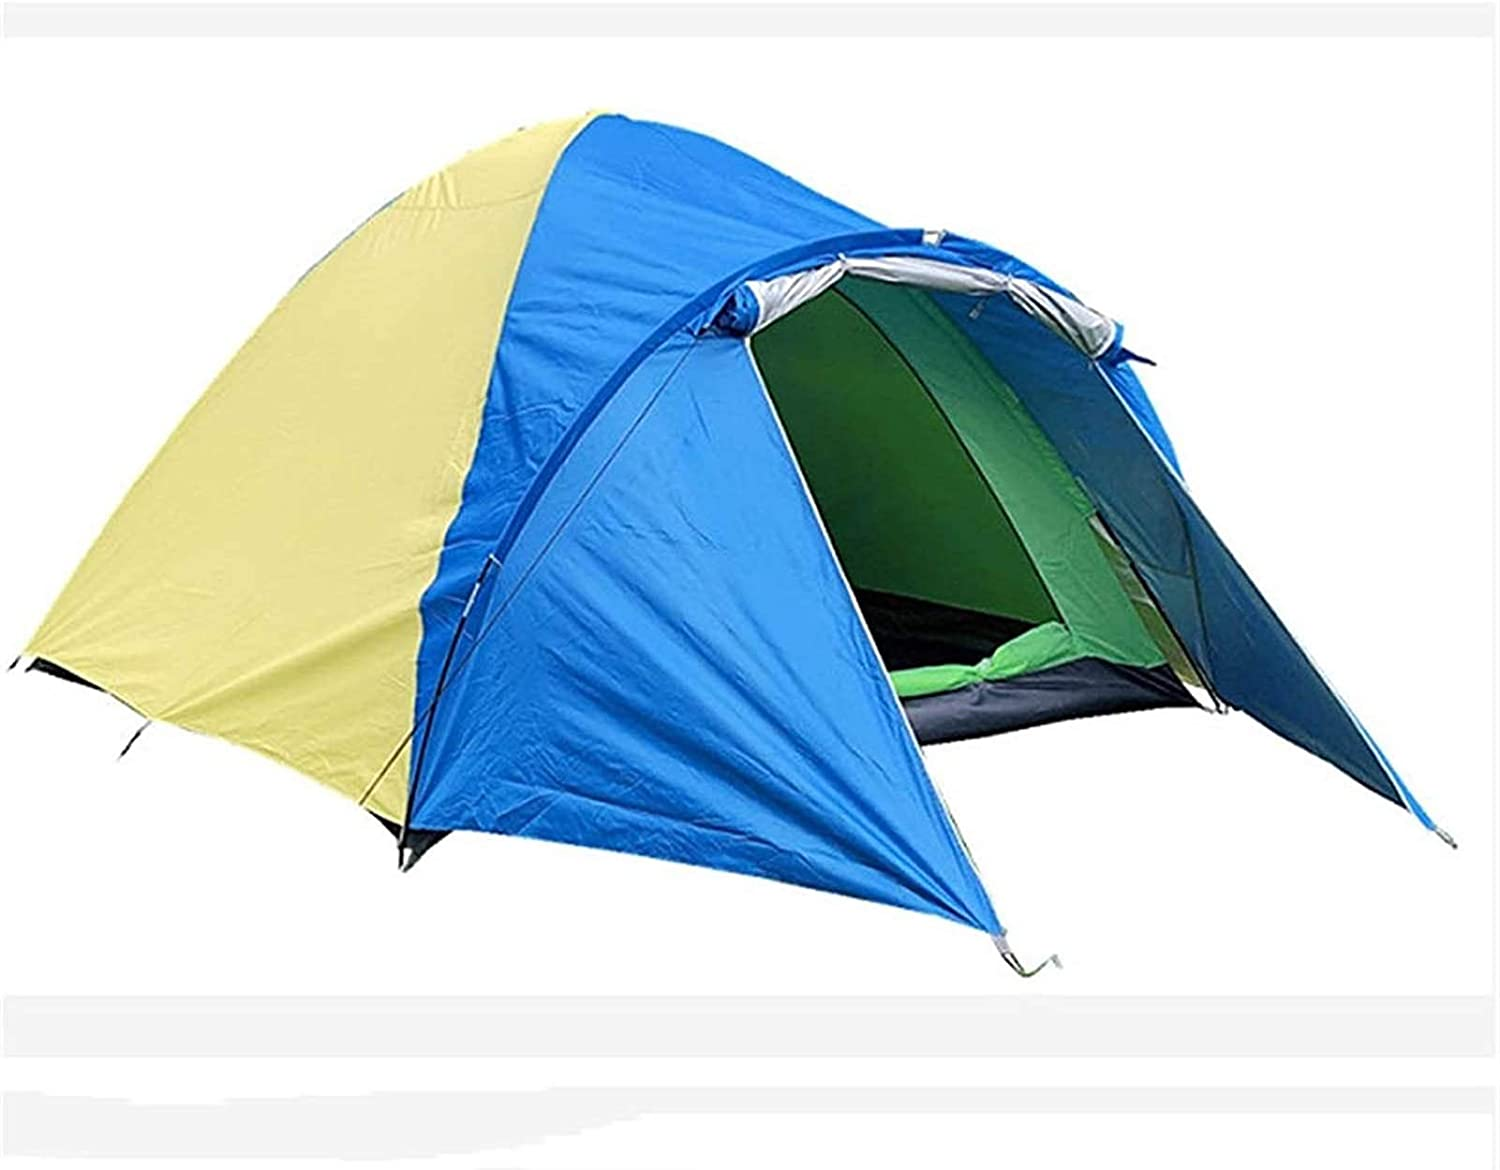 WDZJM Tent Manufacturer regenerated unisex product Outdoor Ultra-Light Rainproof Out Double-Layer